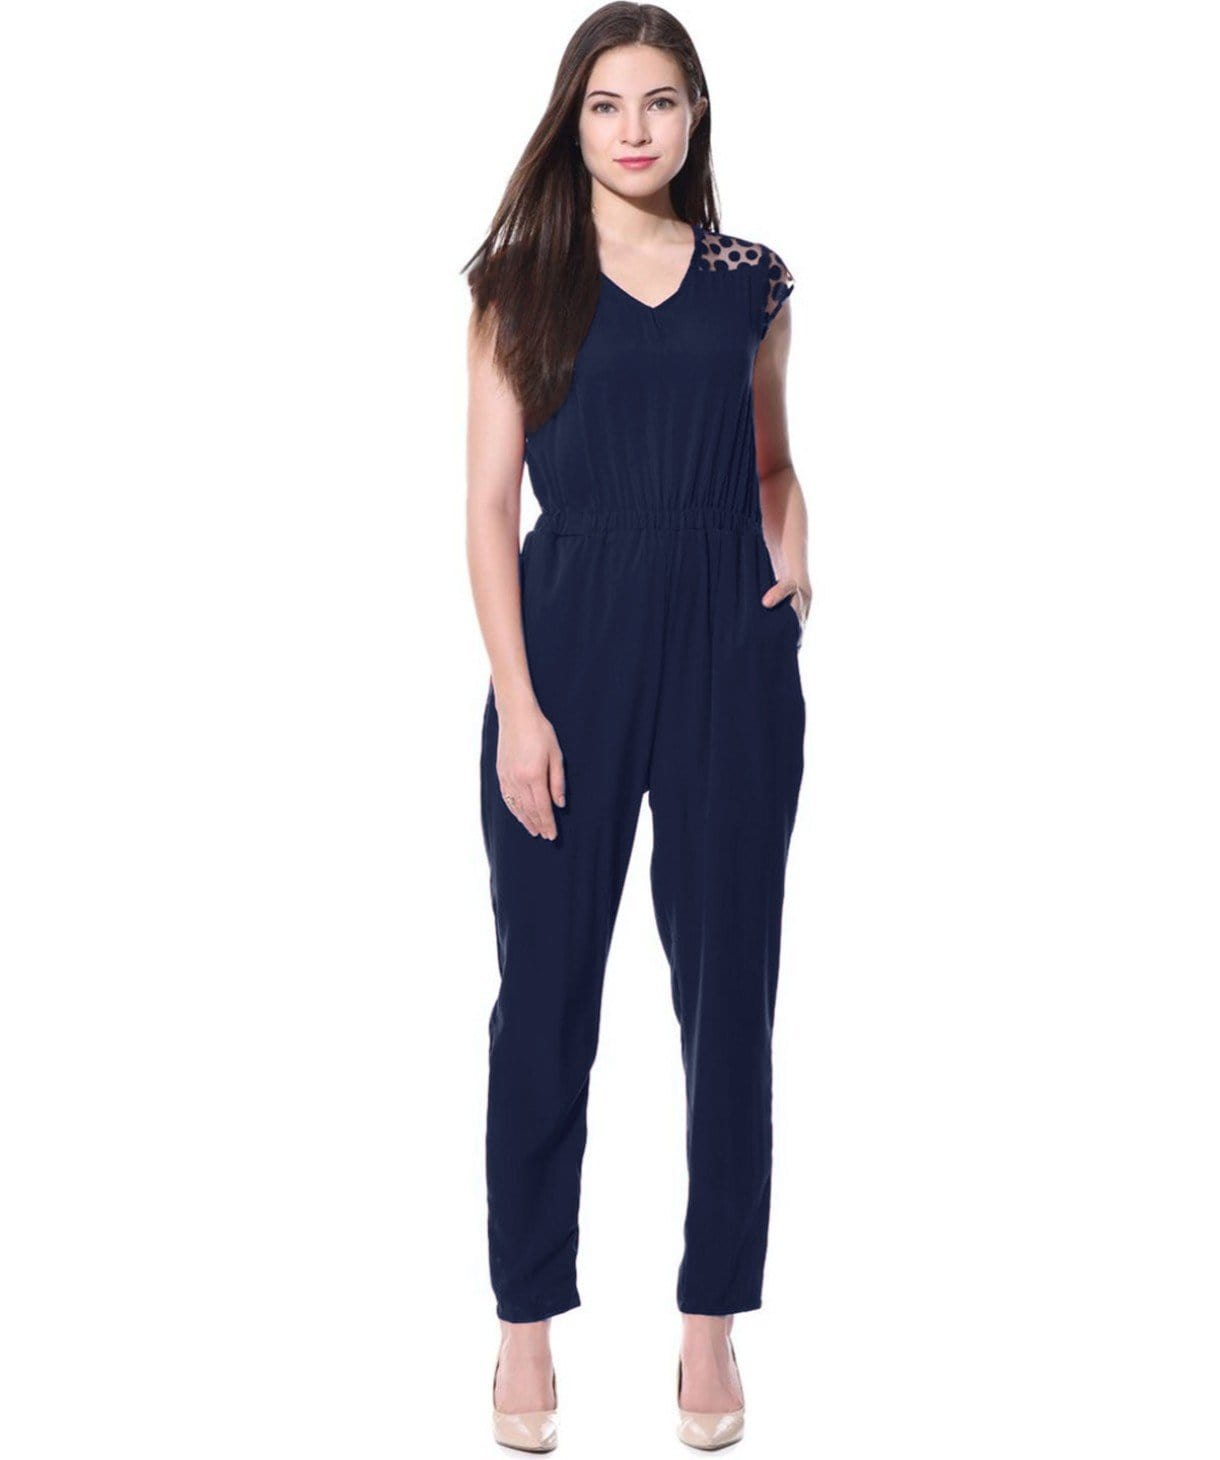 Navy Blue Polka Lace Detailed Jumpsuit - Uptownie